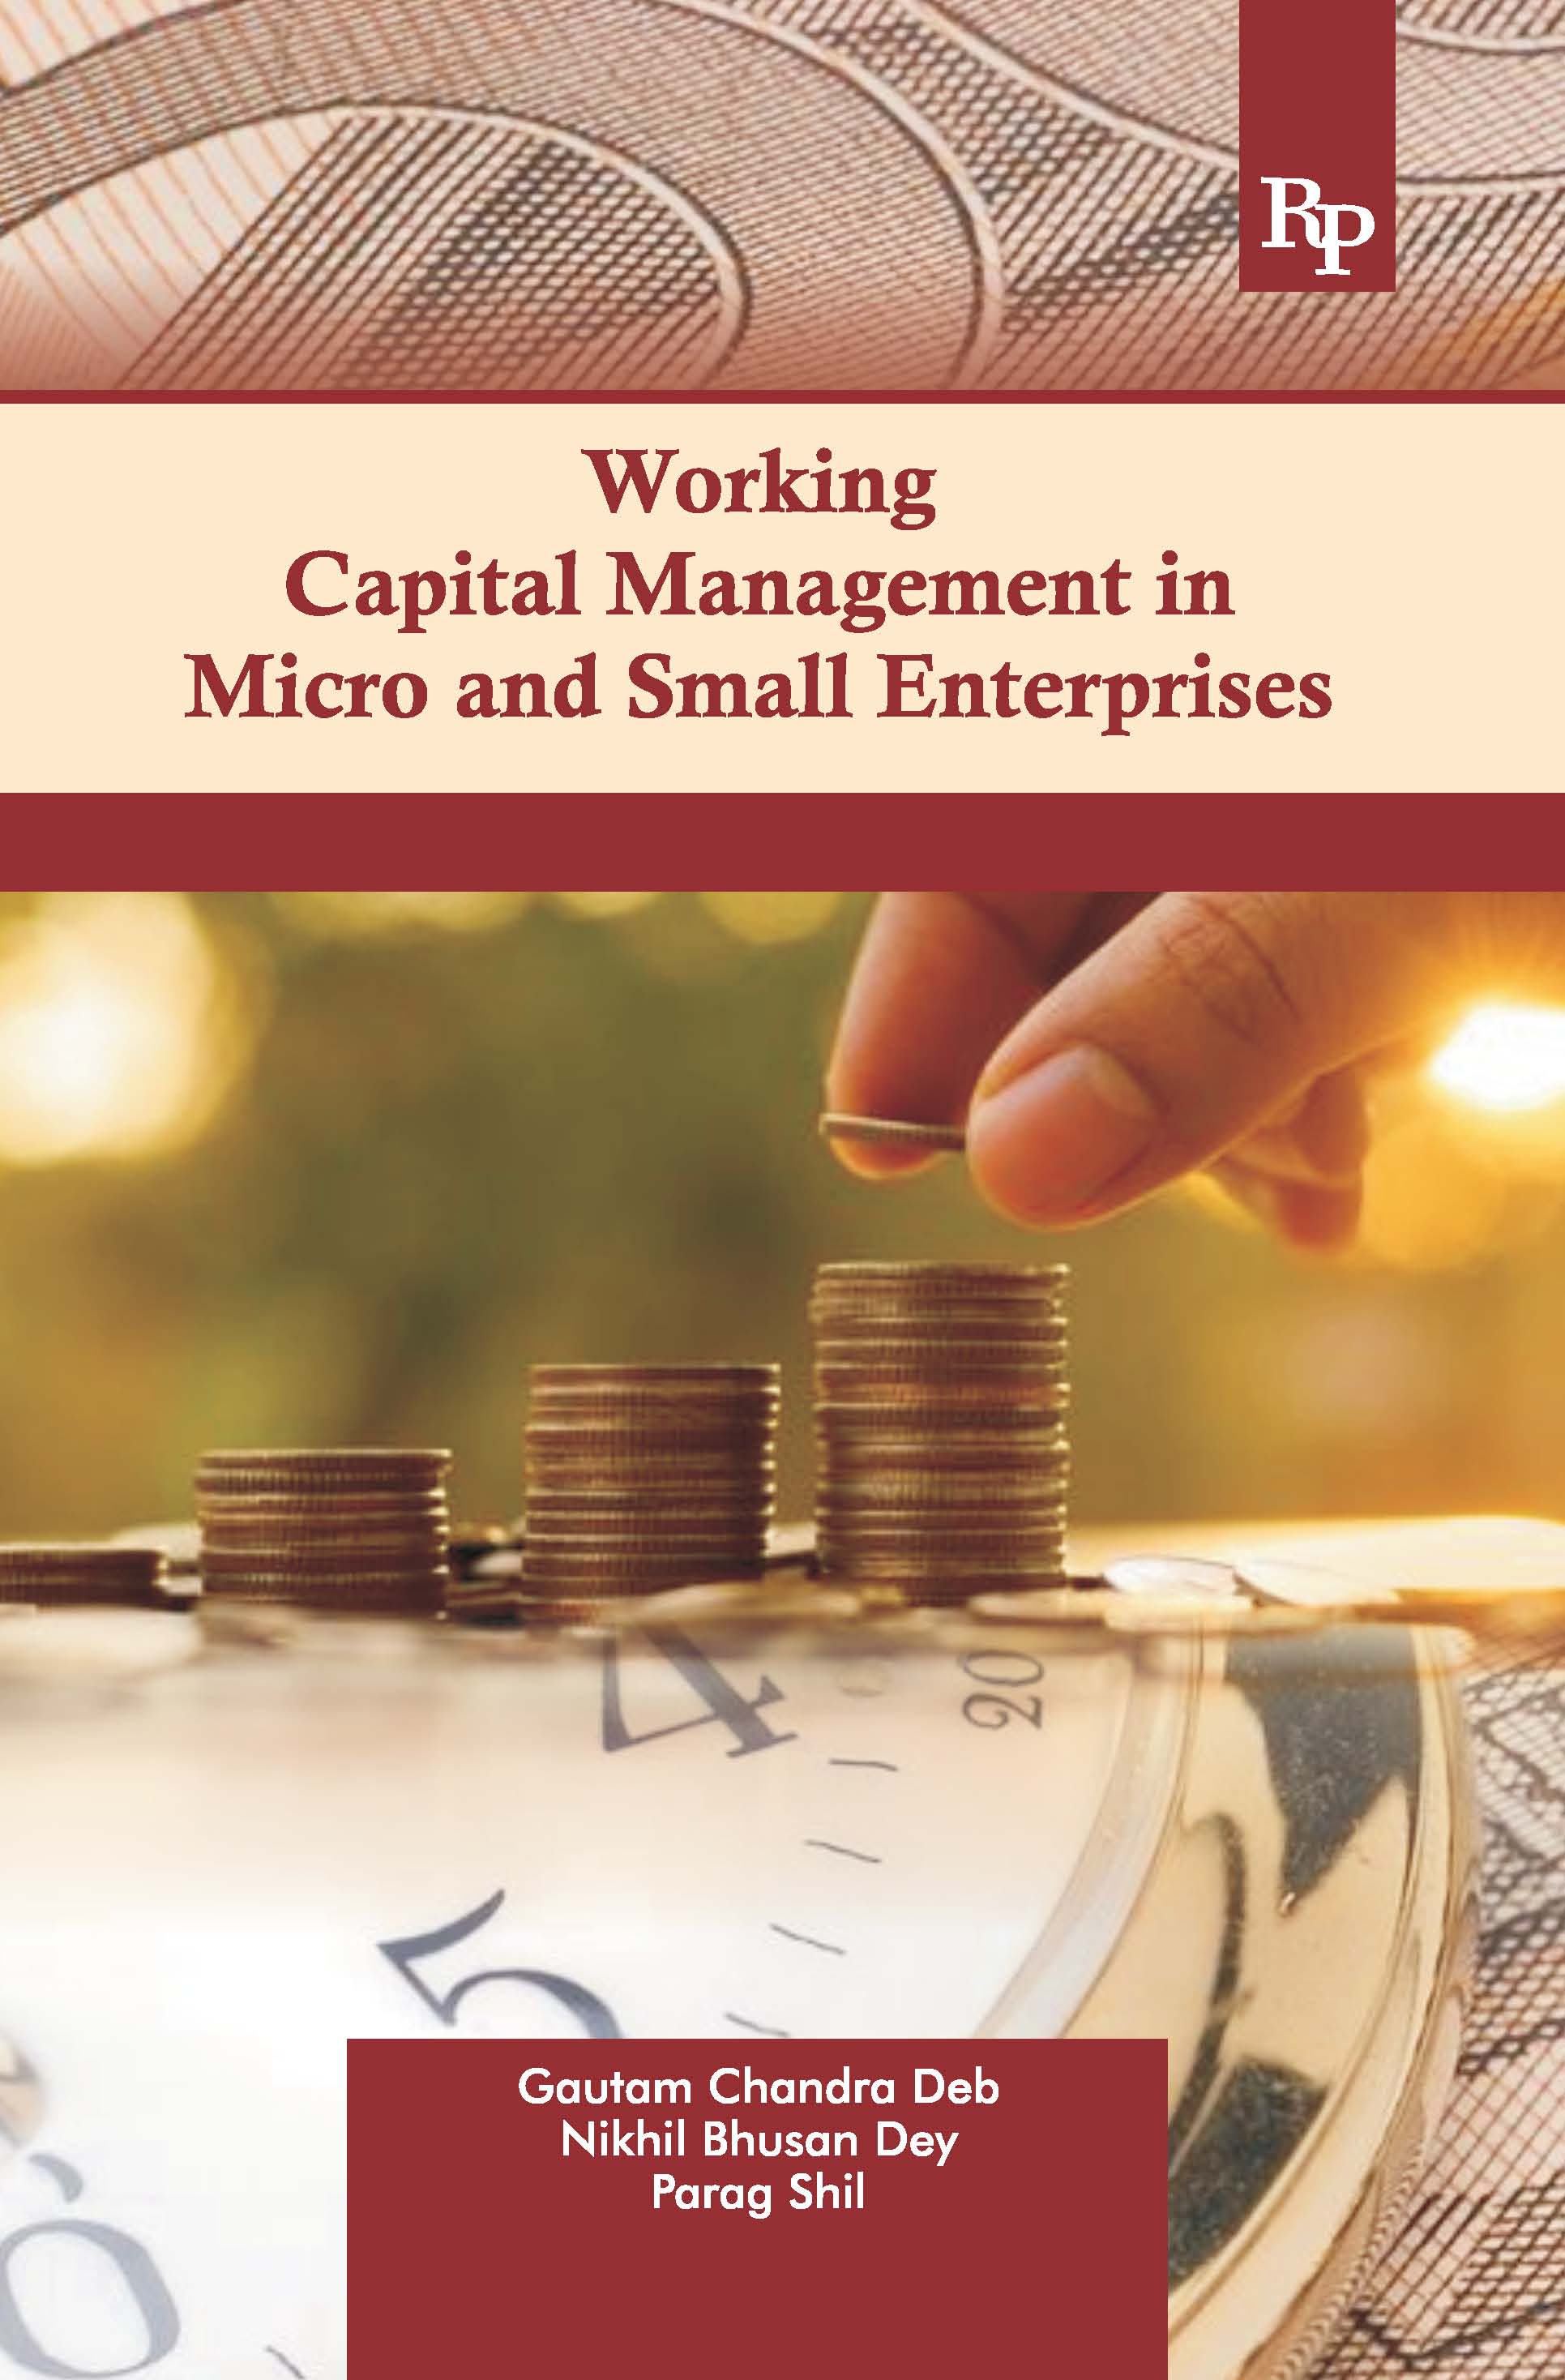 Working capital management in micro and small enterprises in Barka Vally.jpg